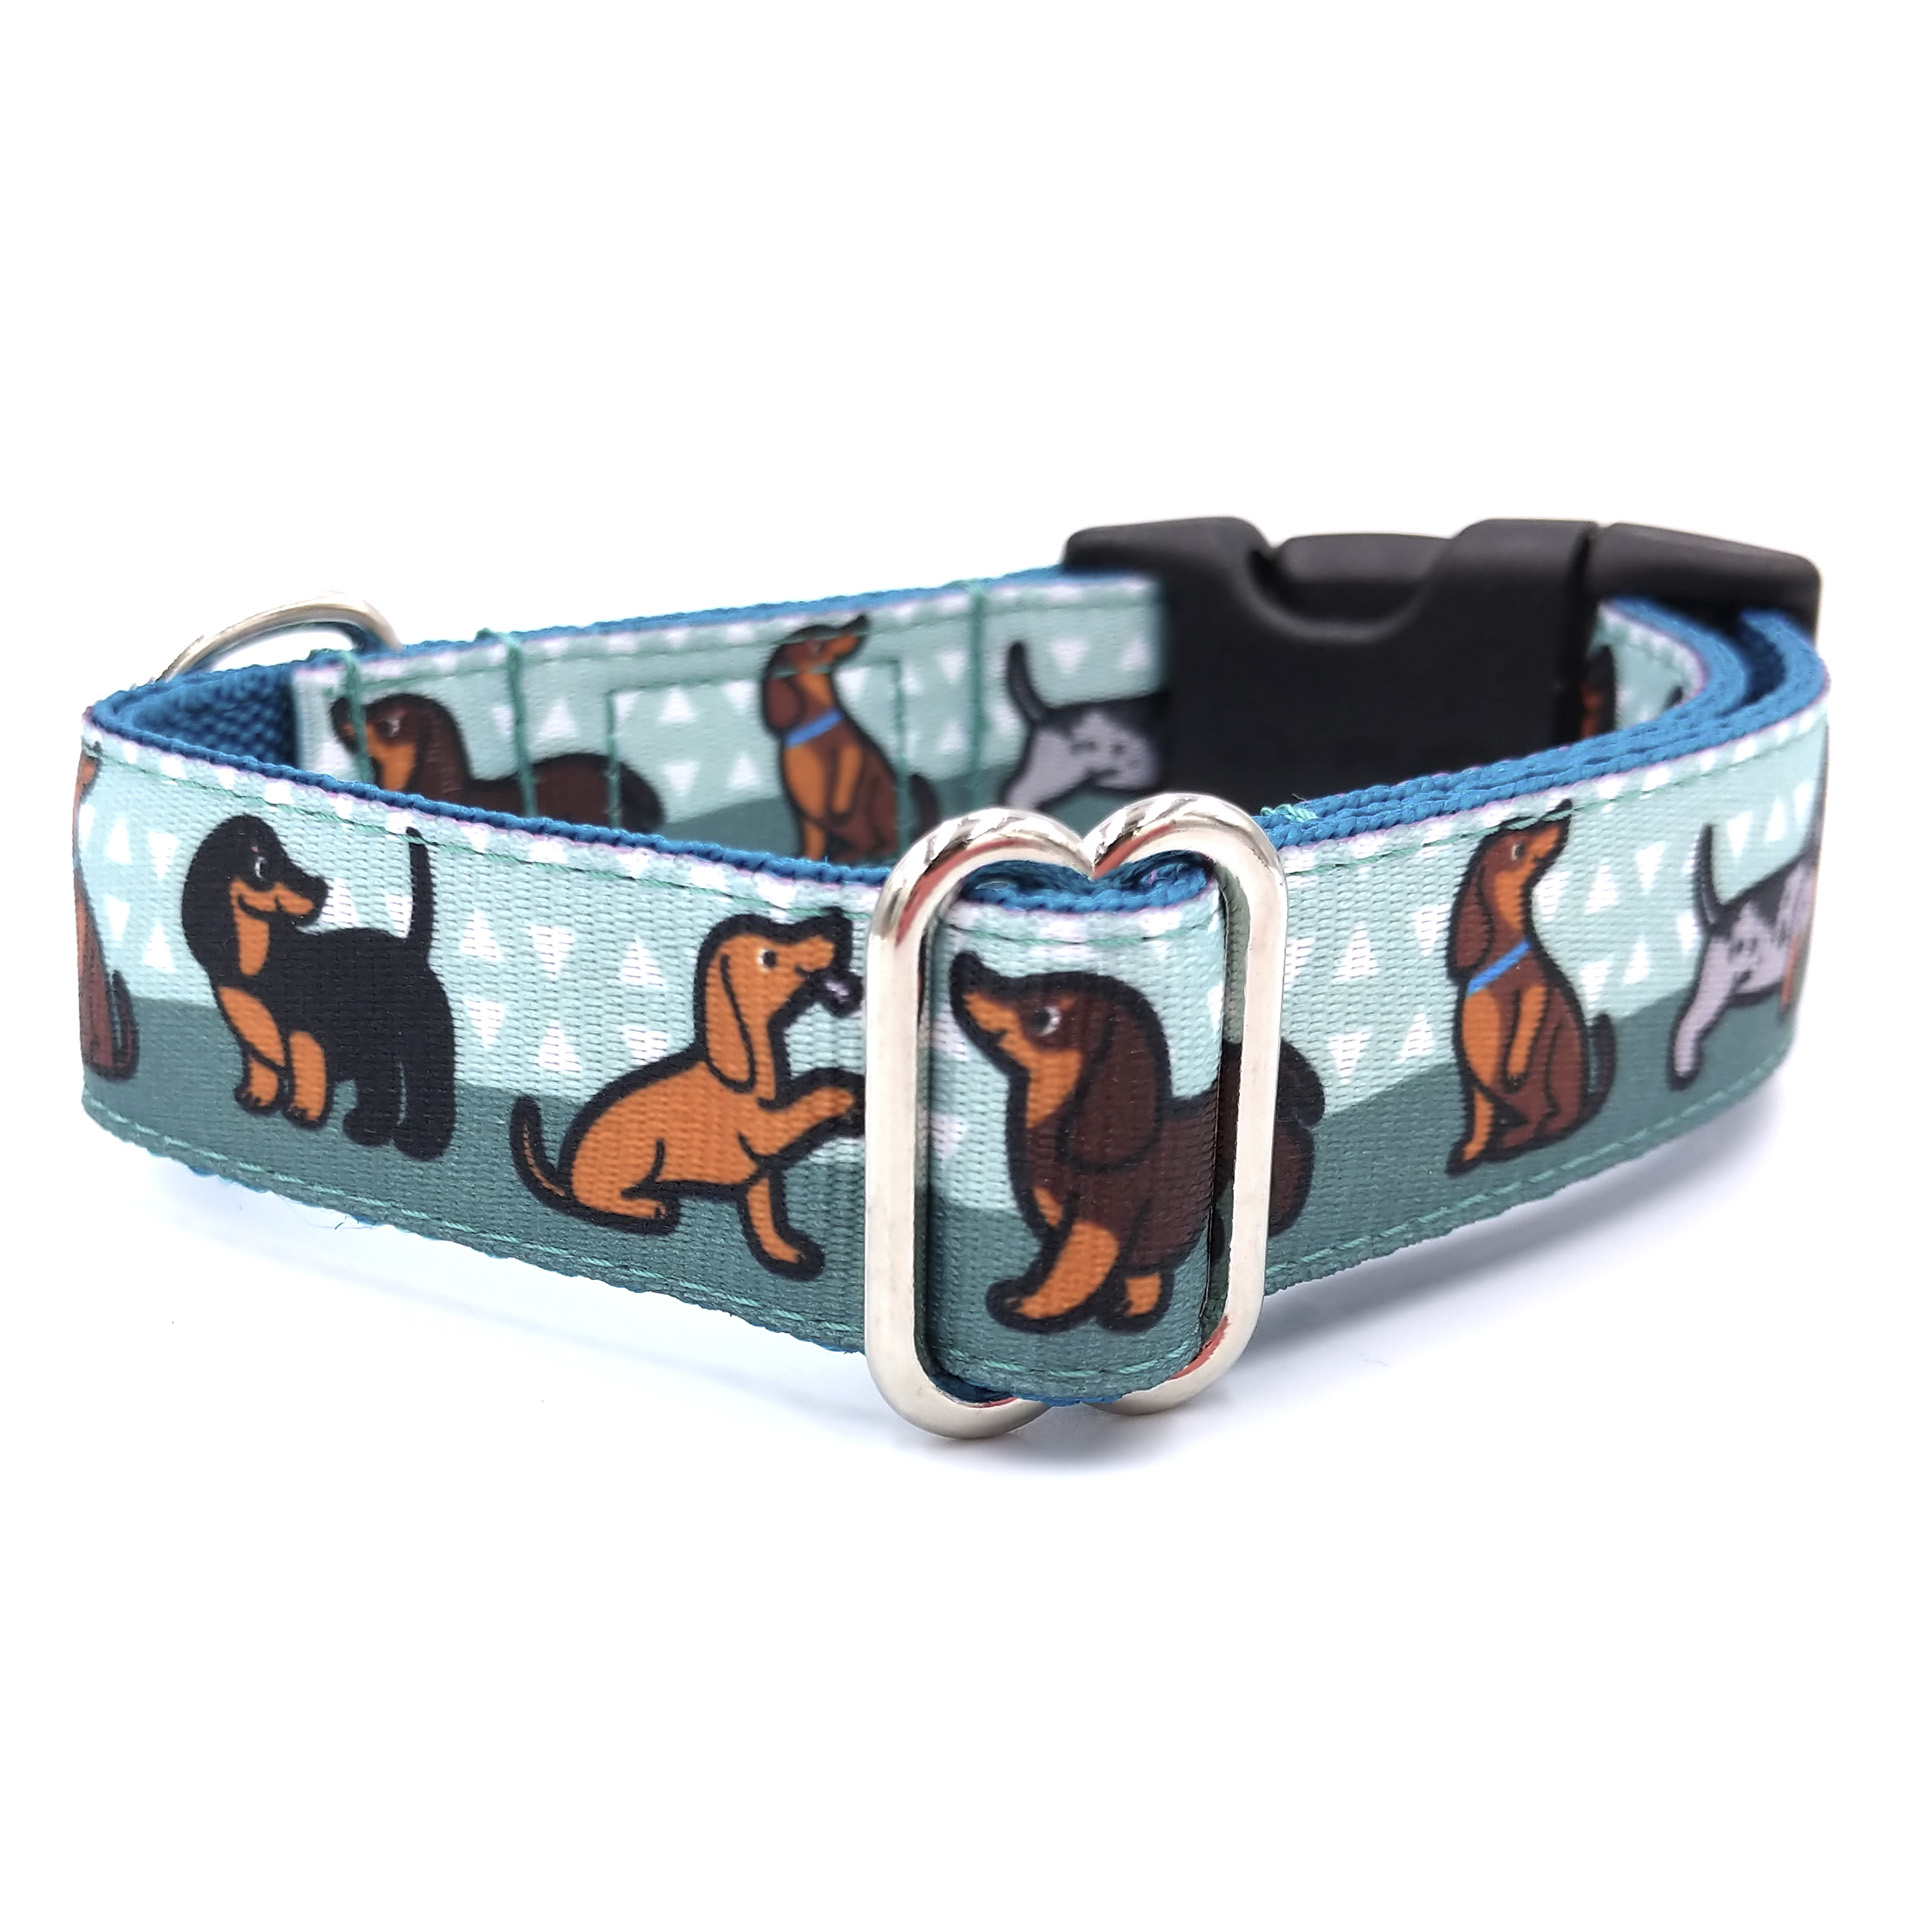 Doxie boy dog collar